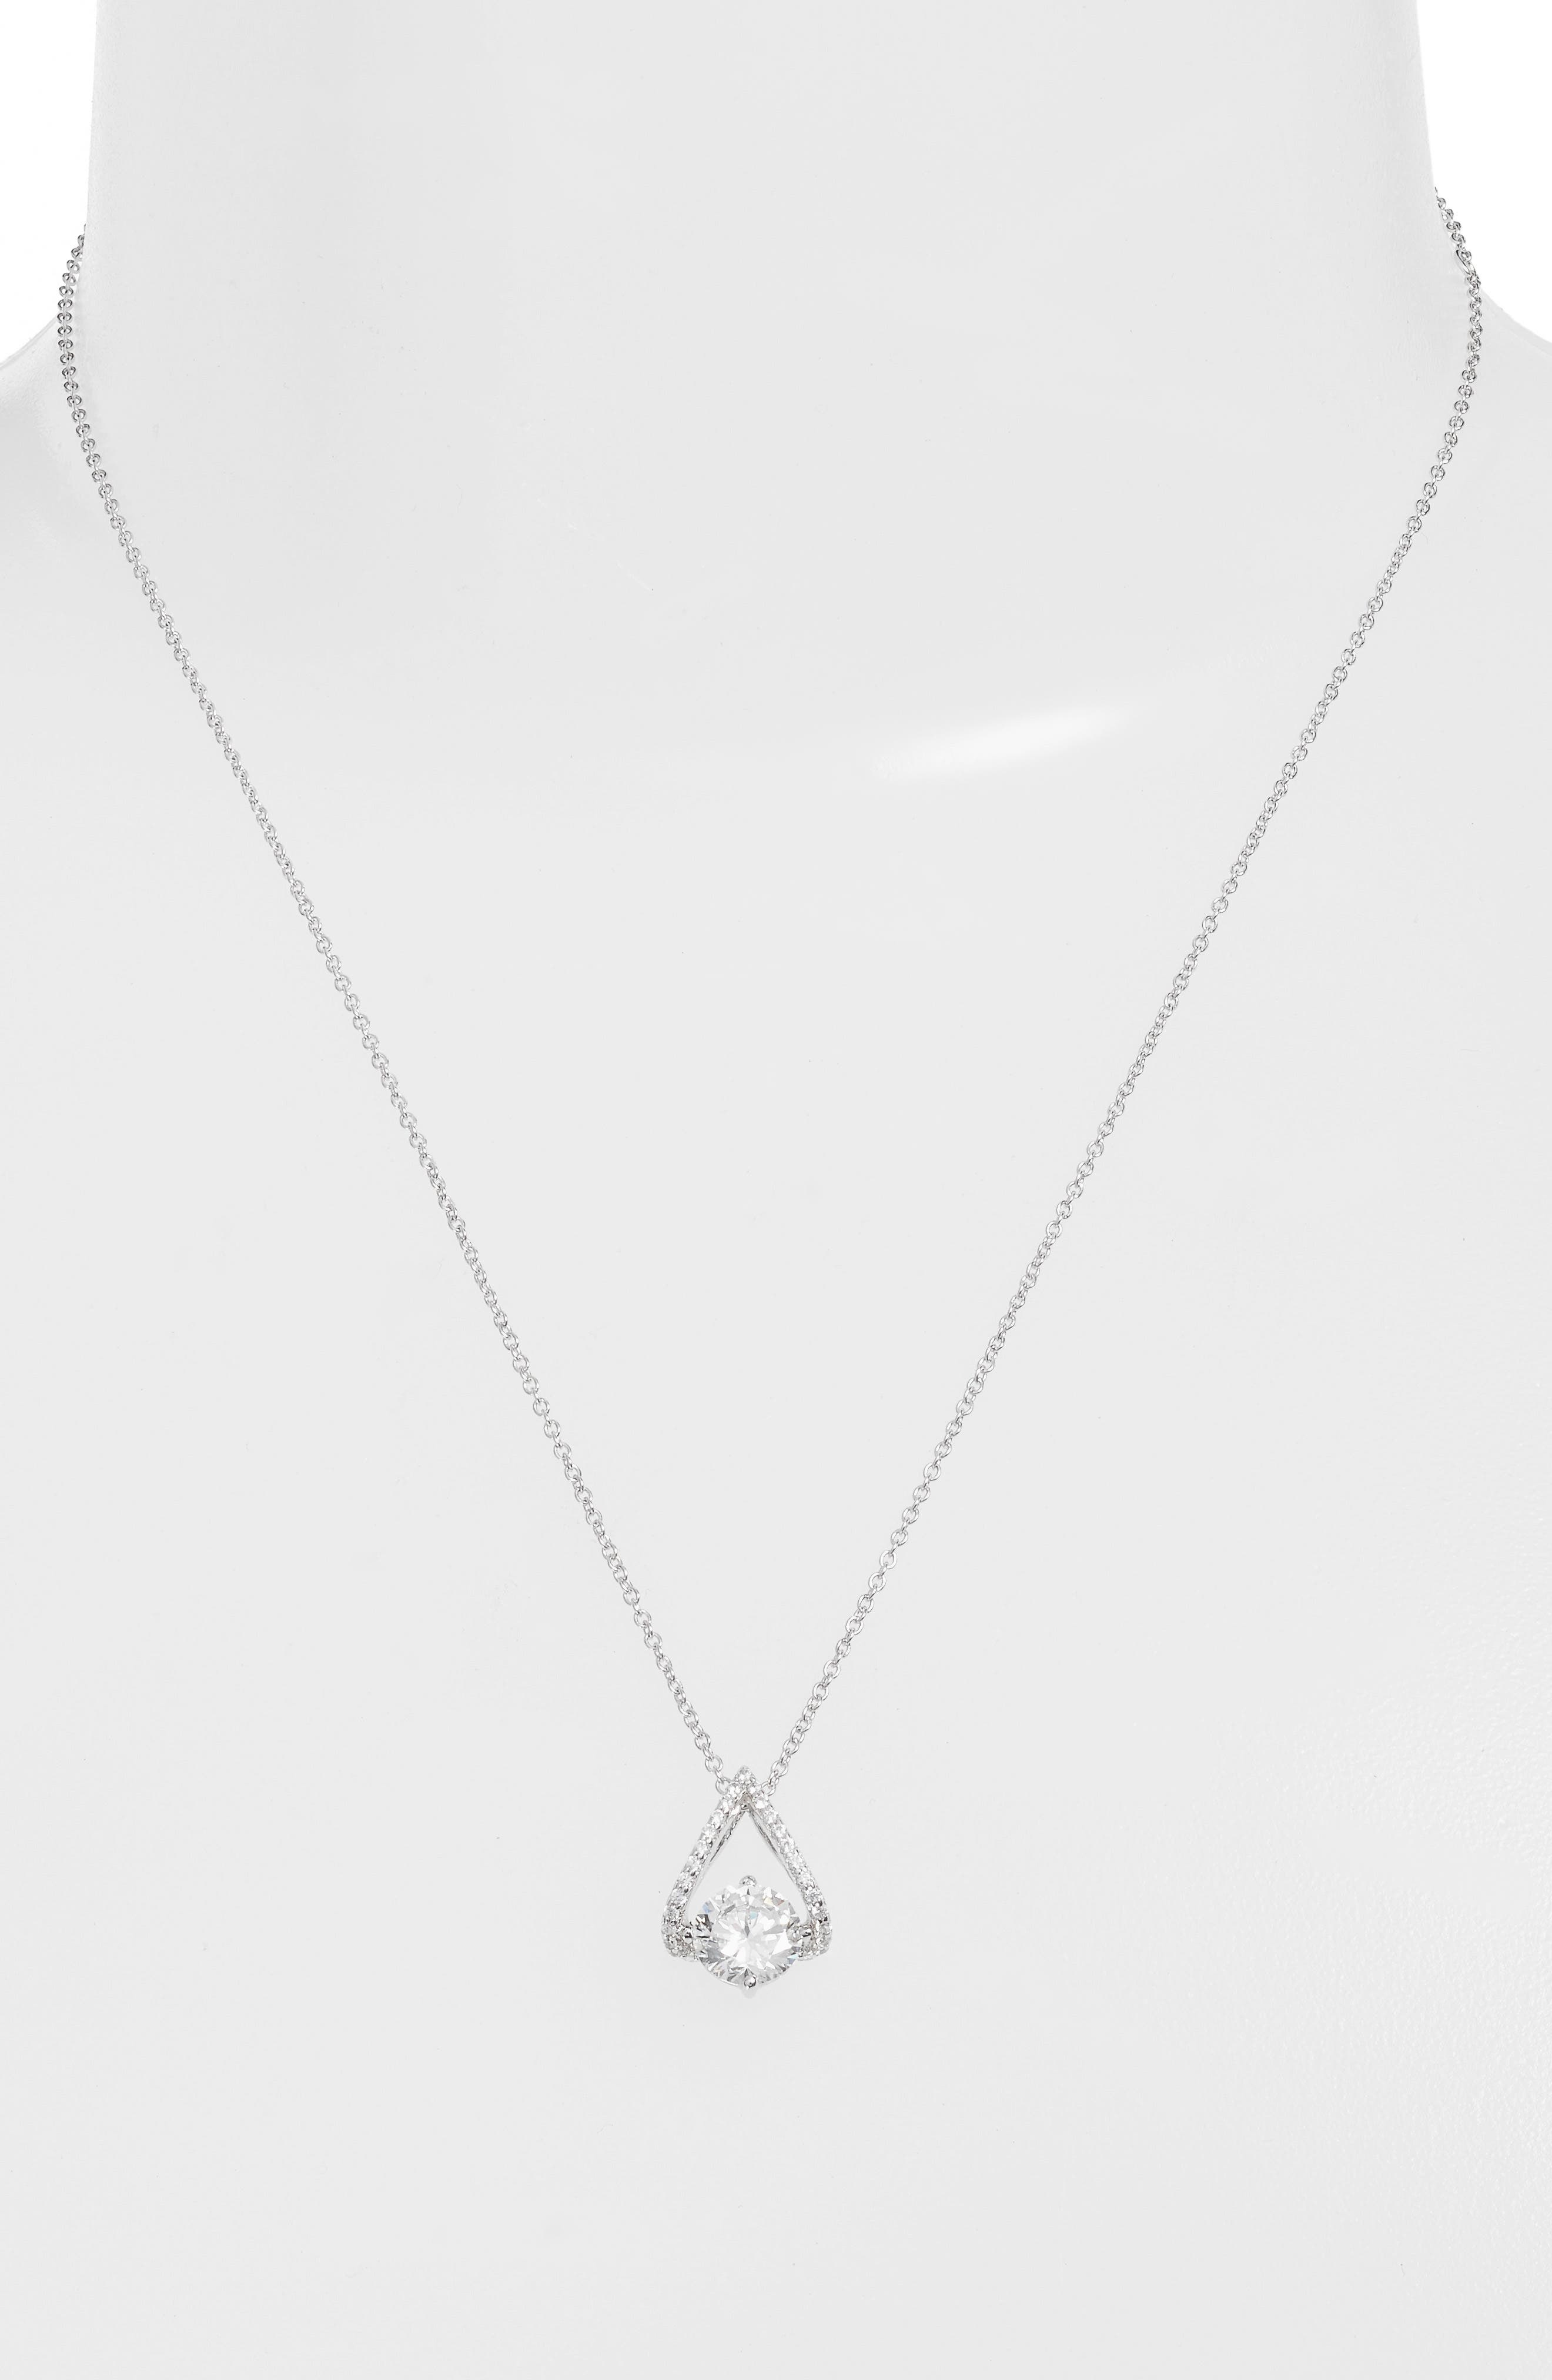 Simulated Diamond Pendant Necklace,                             Alternate thumbnail 2, color,                             Silver/ Clear